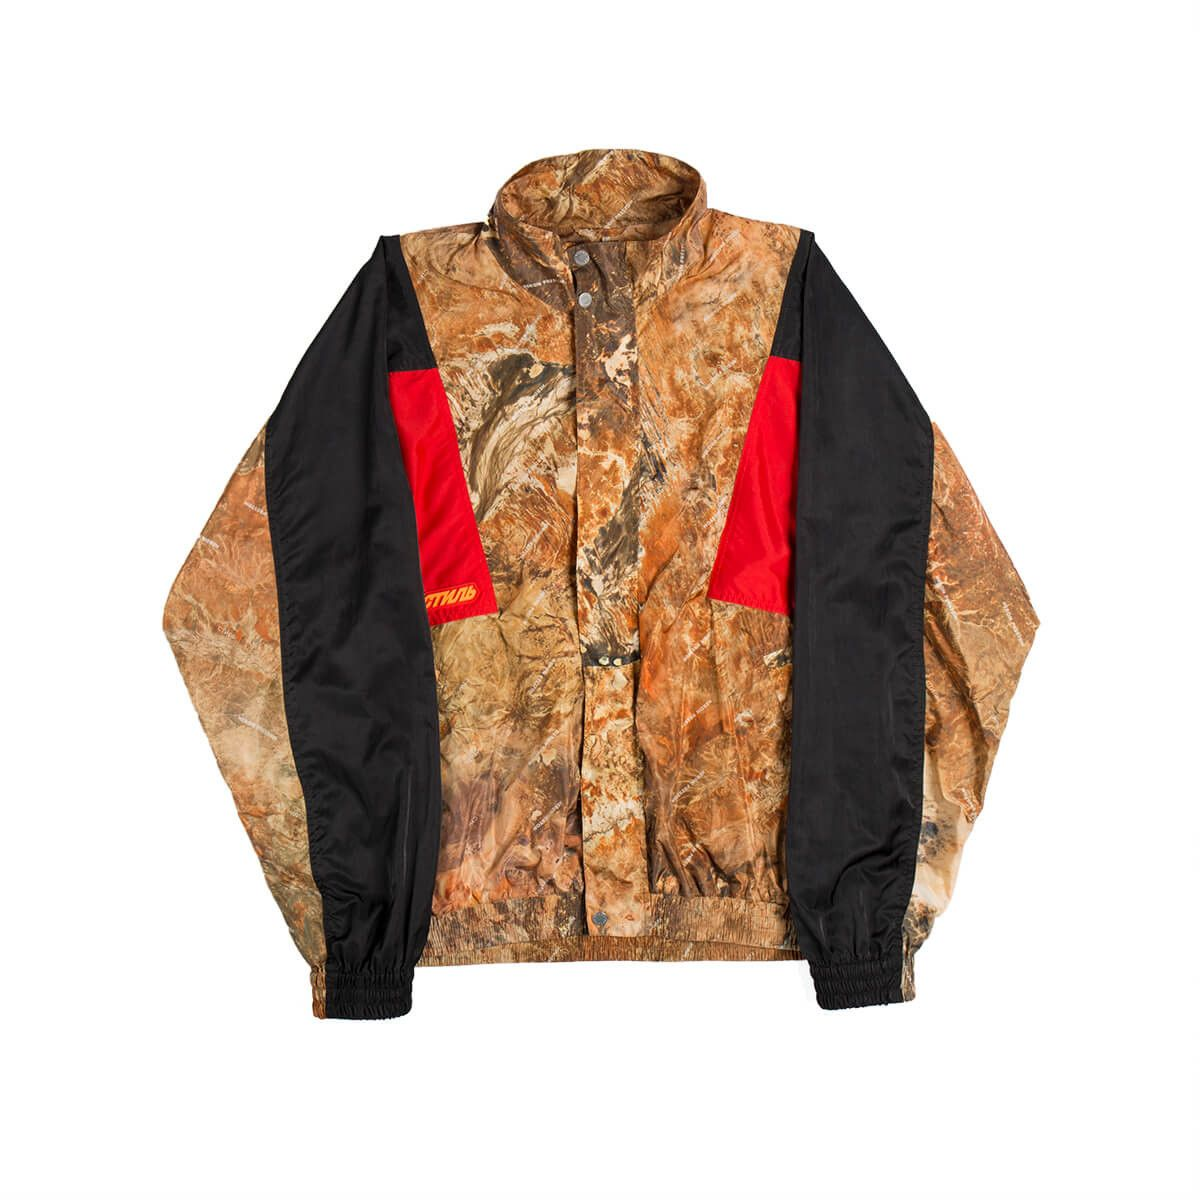 Camo tracksuit jacket from the SS2019 Heron Preston